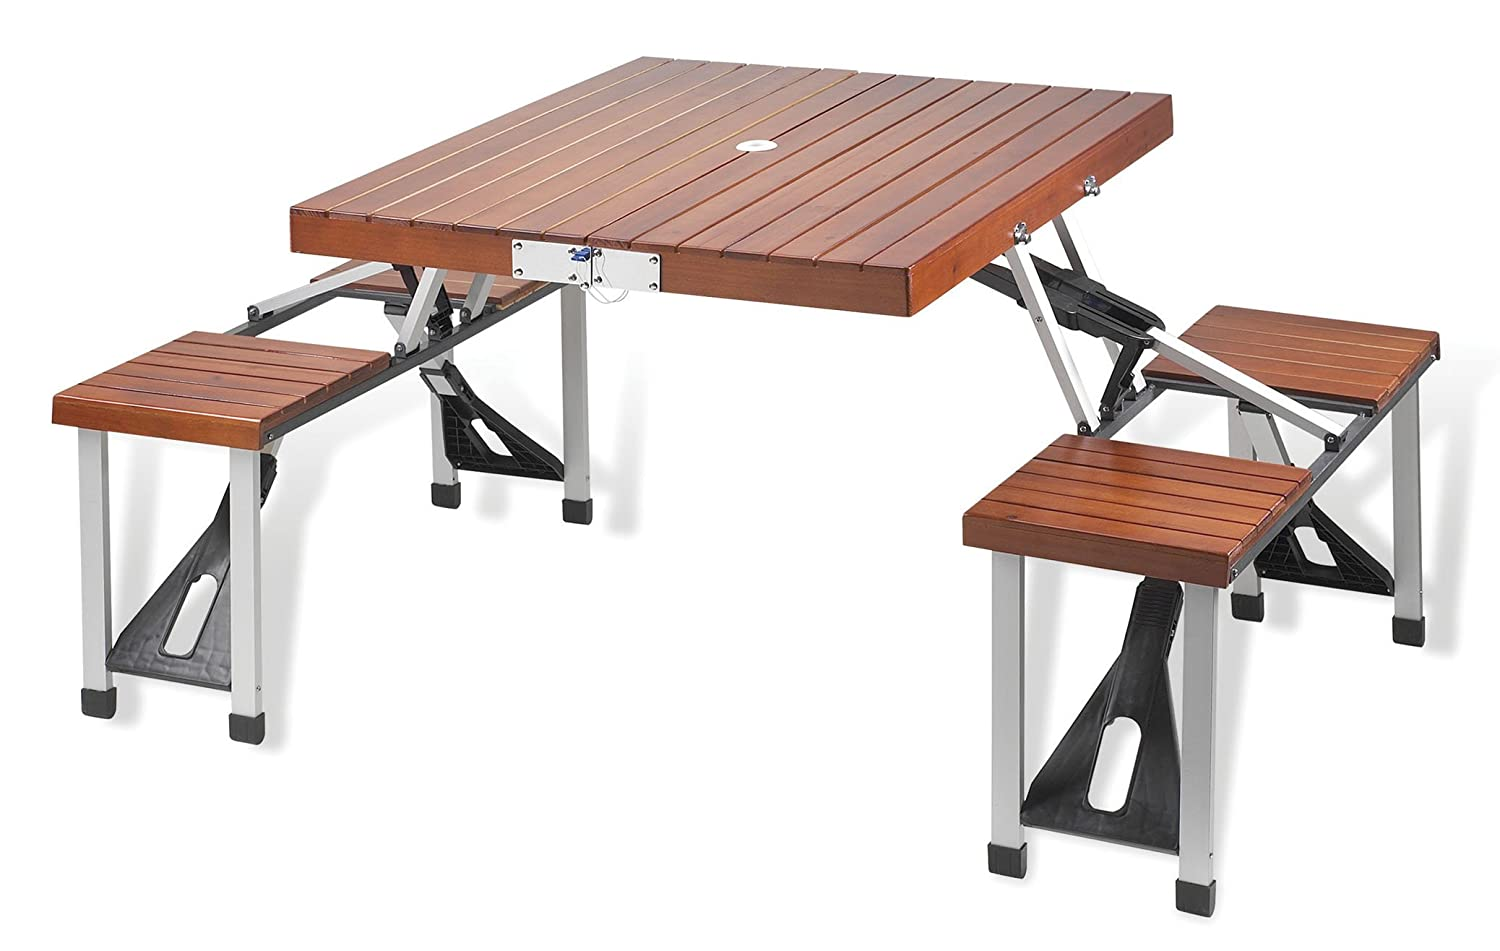 Attractive Amazon.com: Picnic At Ascot Portable Picnic Table Set: Kitchen U0026 Dining